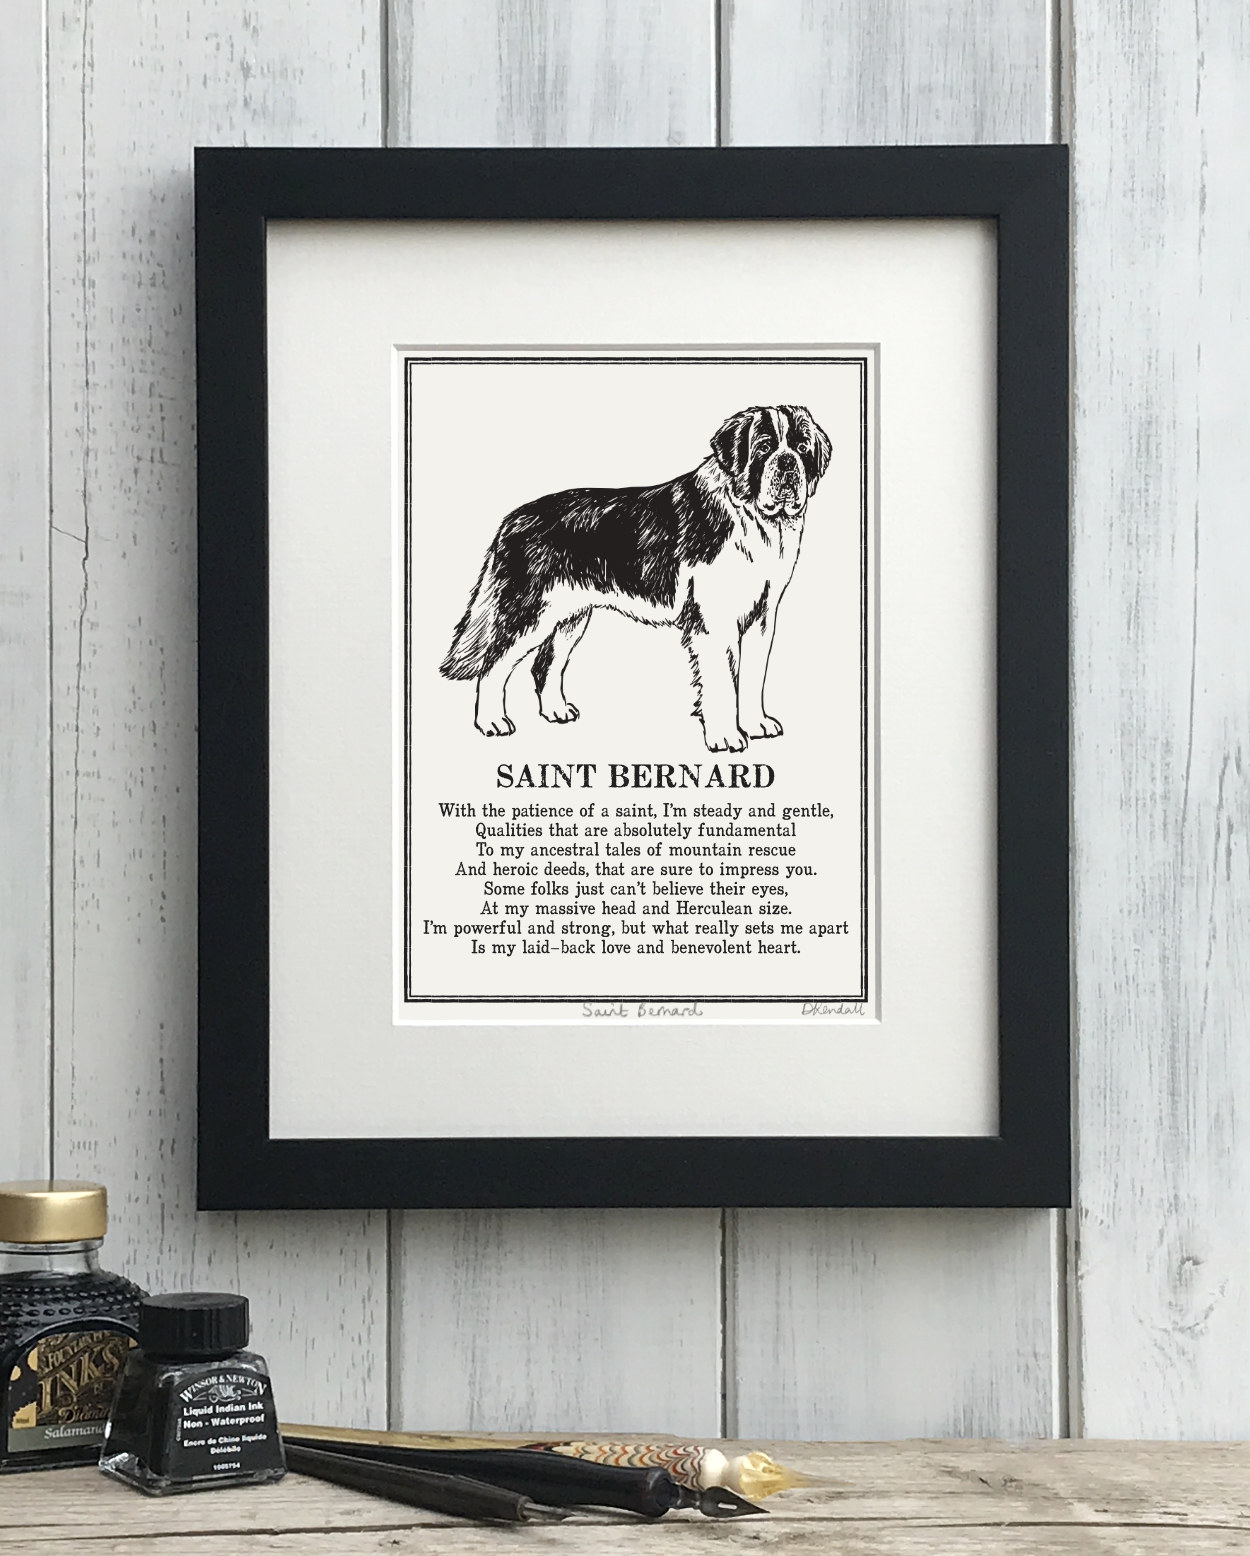 Saint Bernard Doggerel Illustrated Poem Art Print | The Enlightened Hound